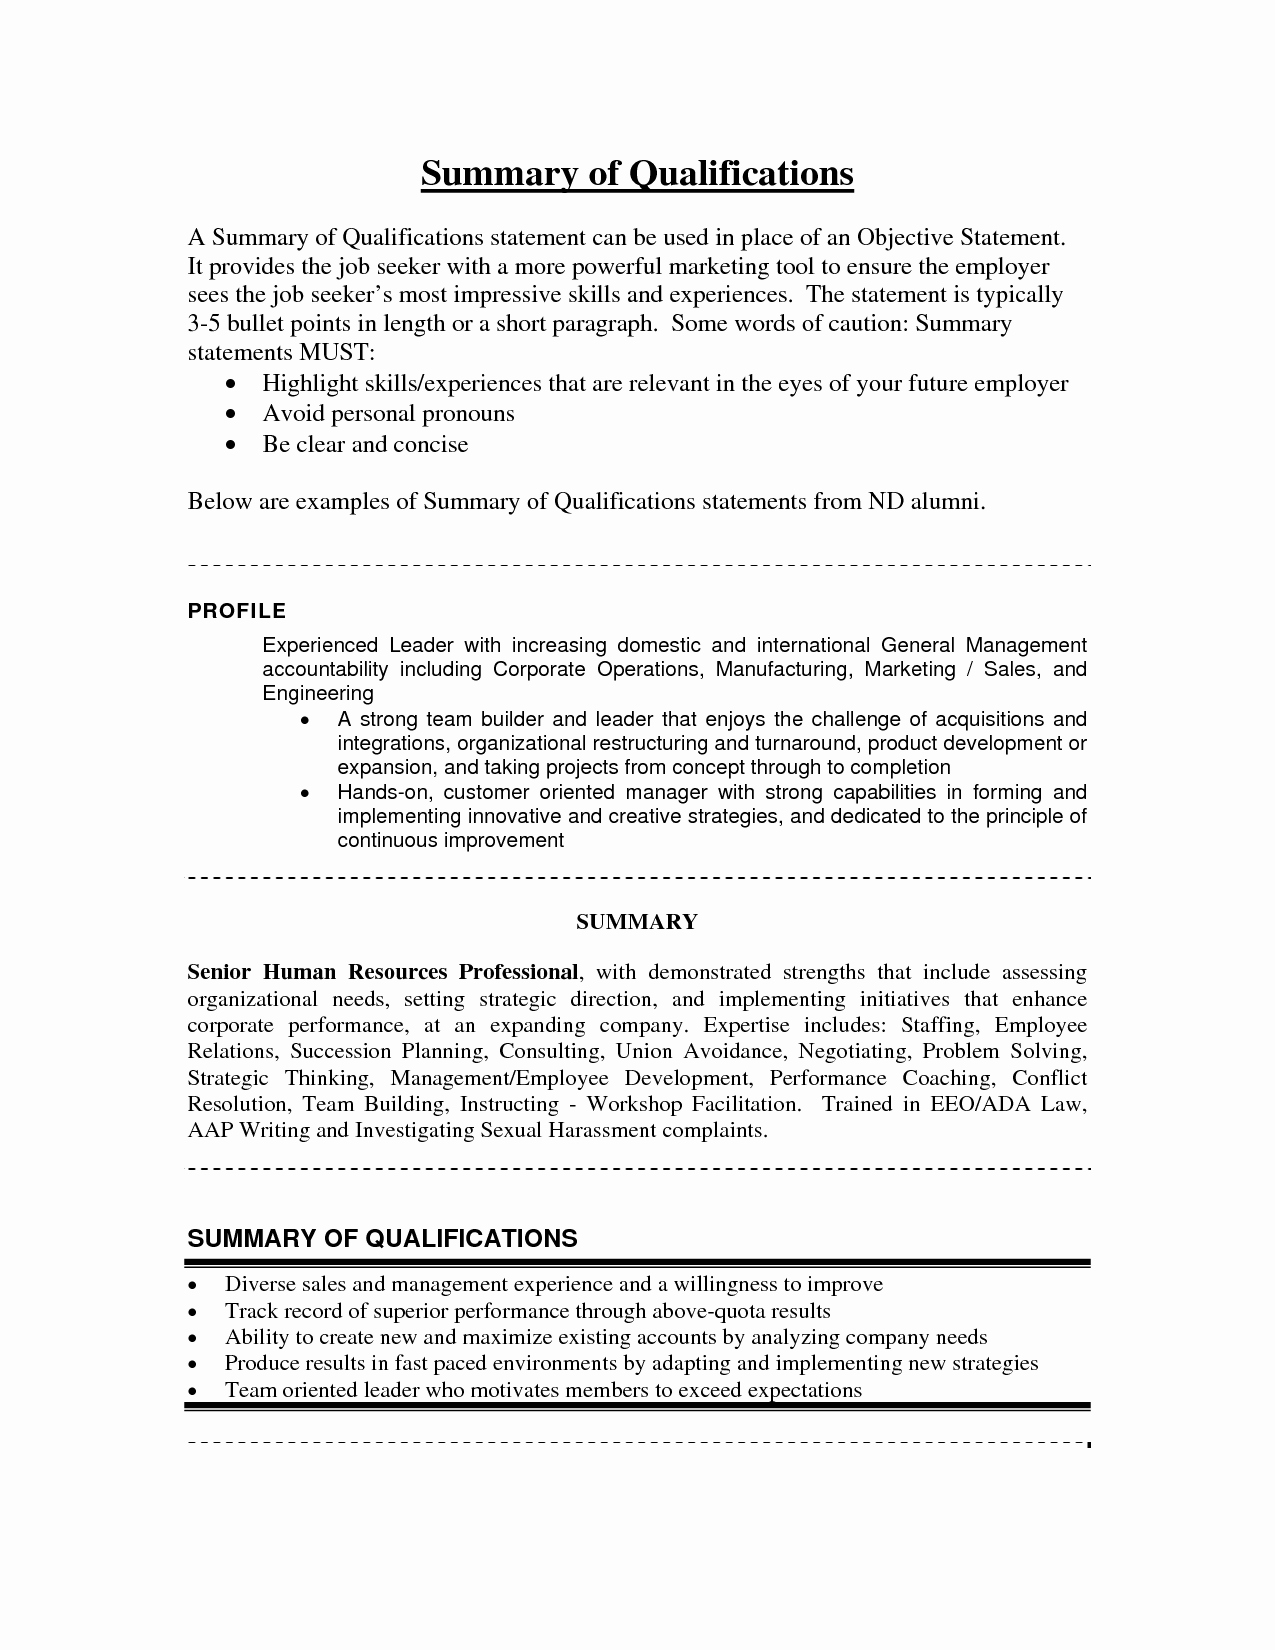 Summary Qualifications Sample Resume Accounting